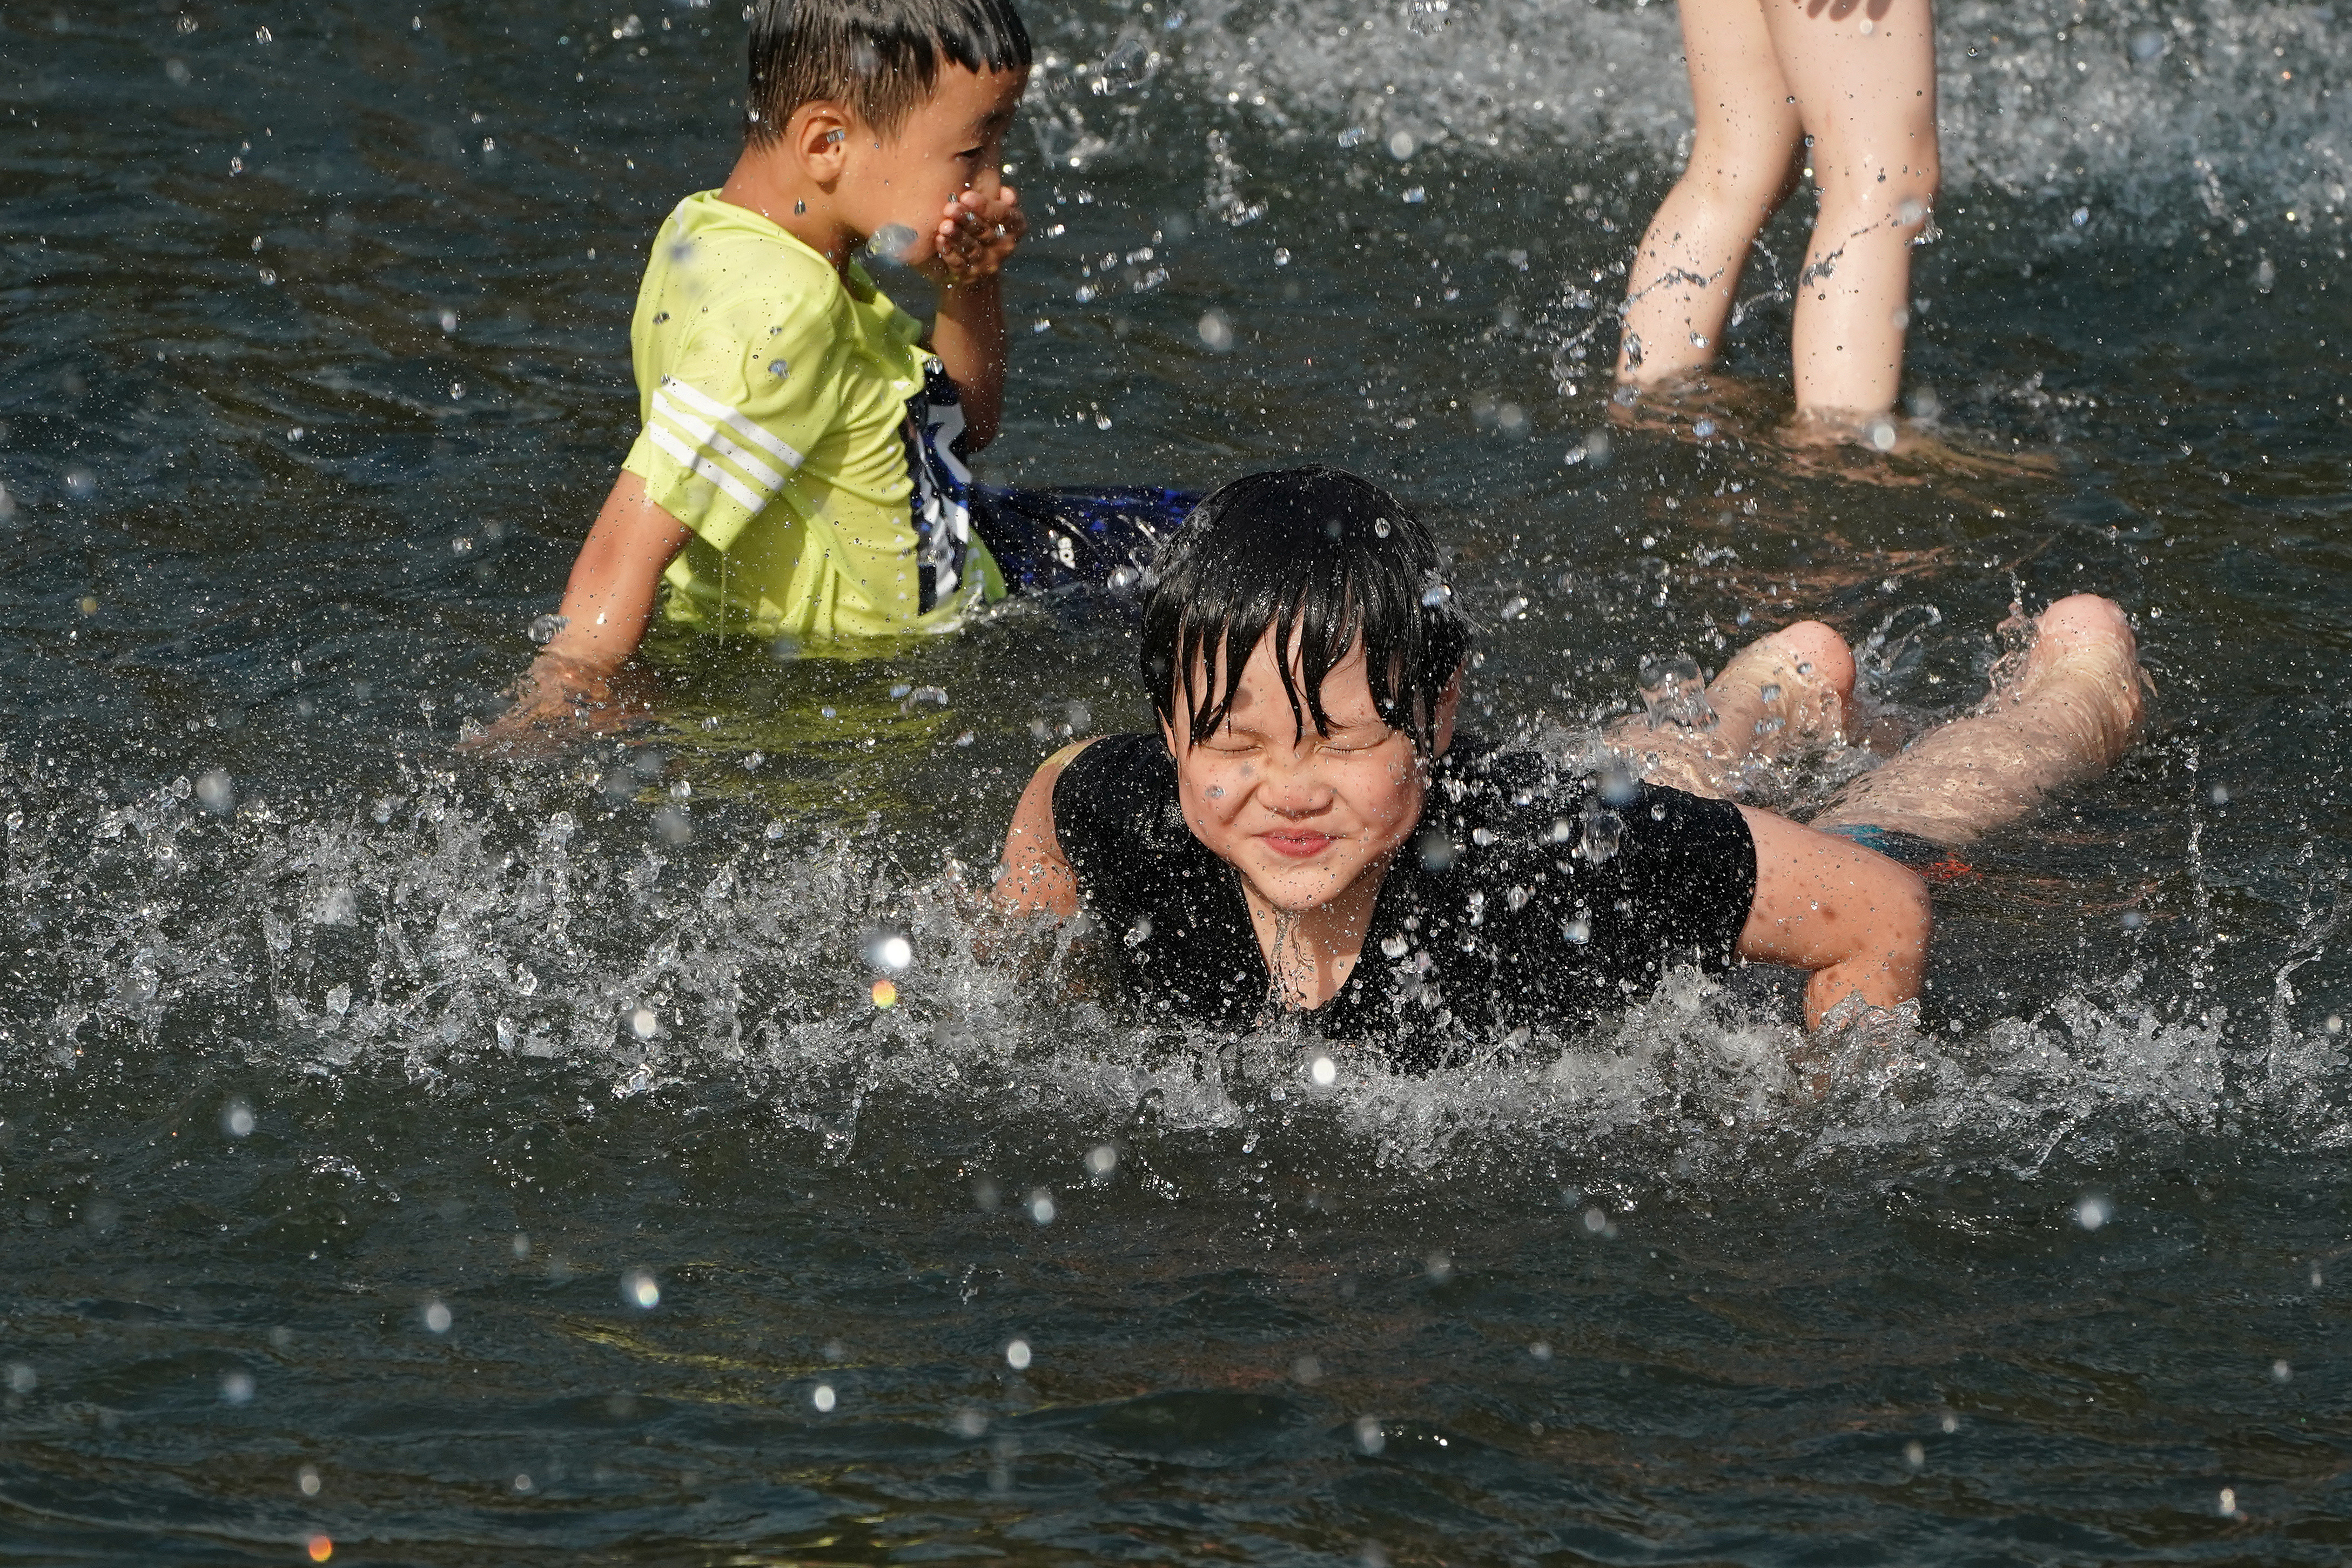 Children play in the fountain at Washington Square Park during hot weather in the Manhattan borough of New York, New York, U.S., July 19, 2019. REUTERS/Carlo Allegri - RC15622C01F0